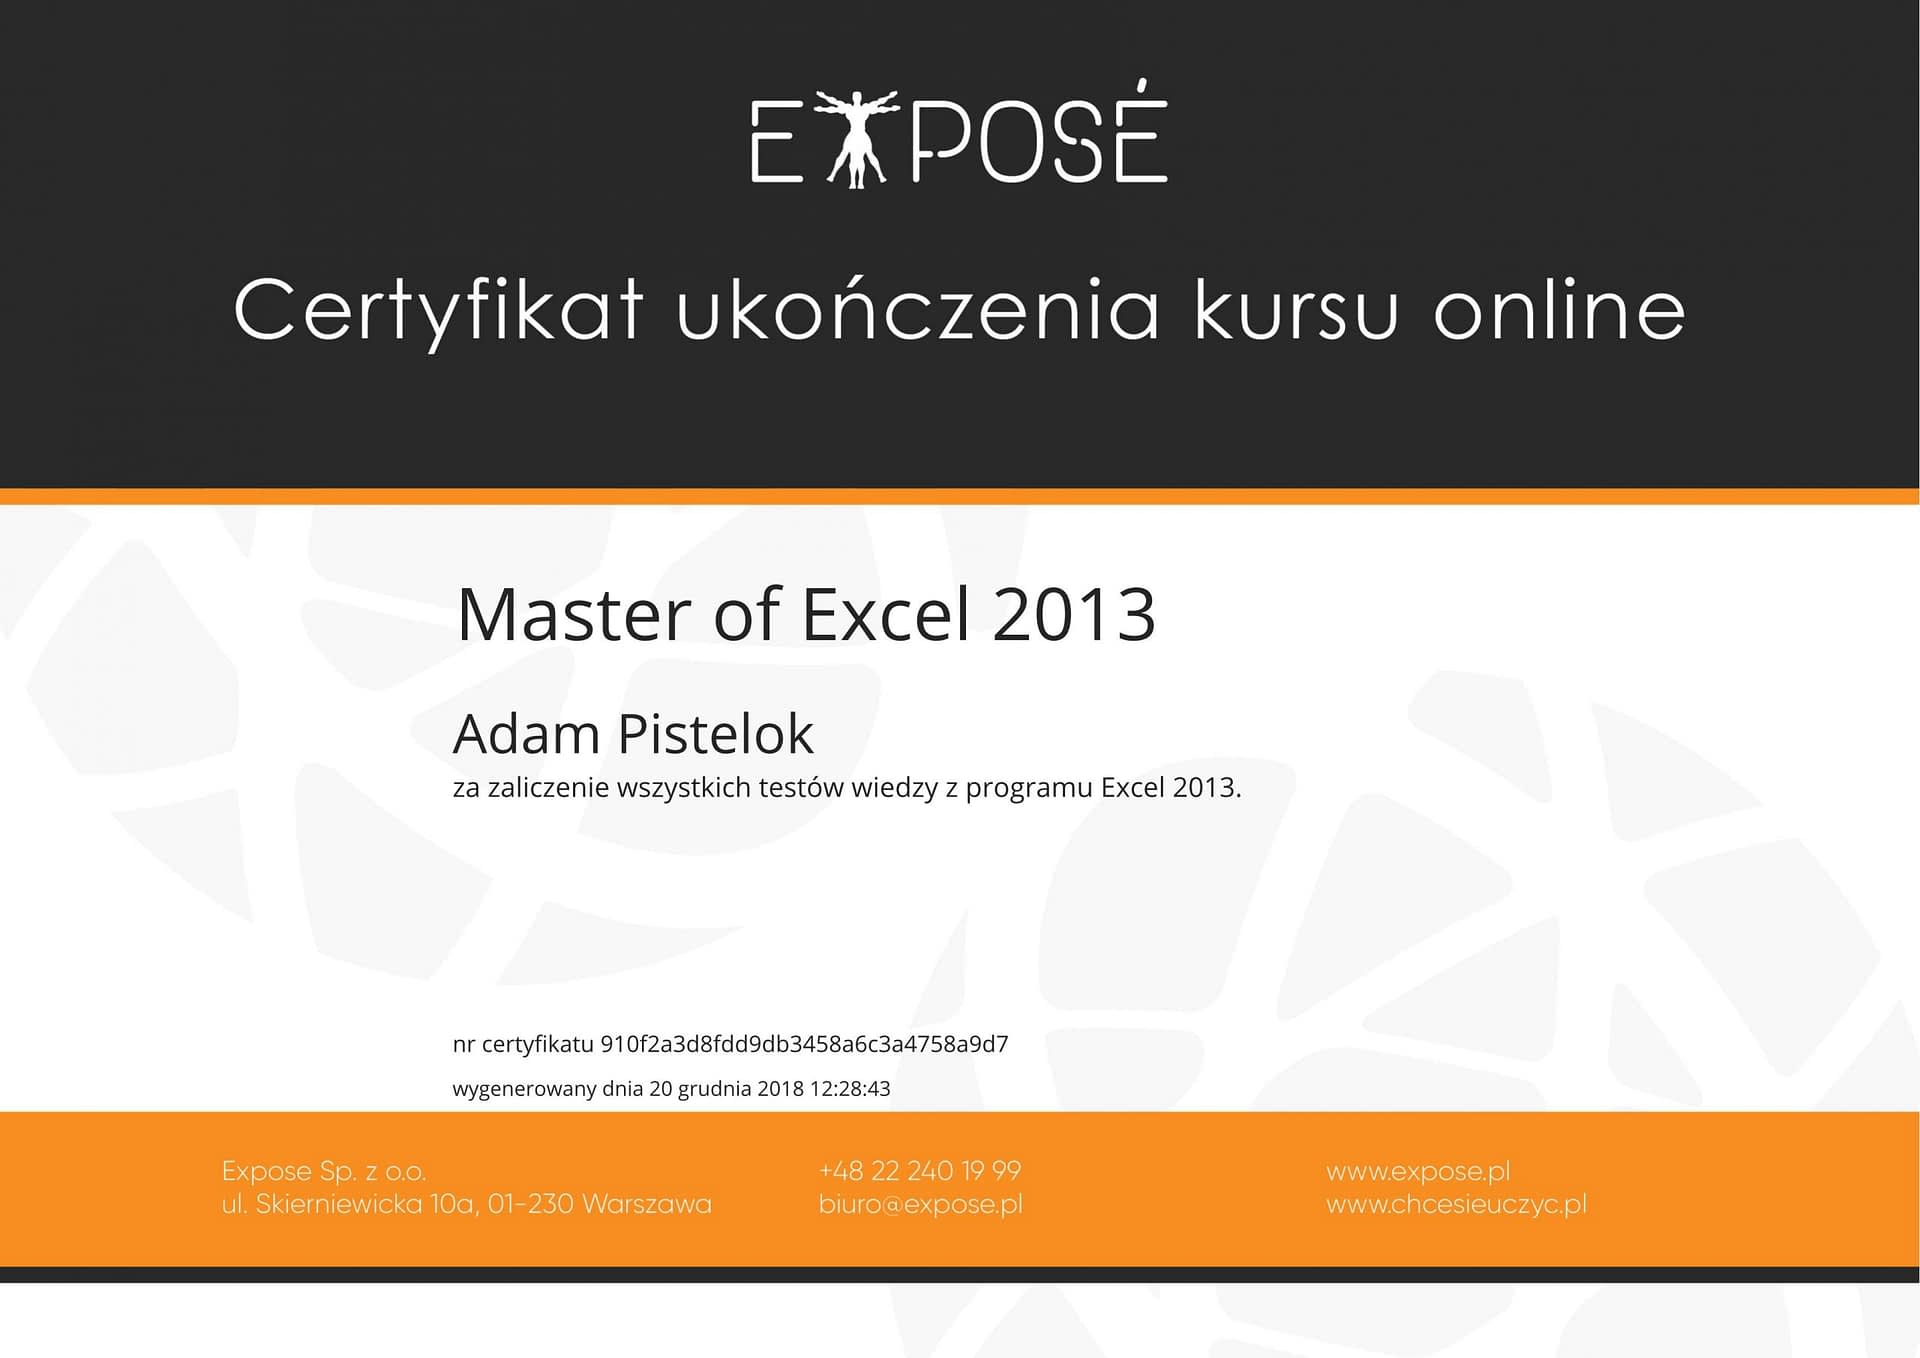 Master of excel 2013